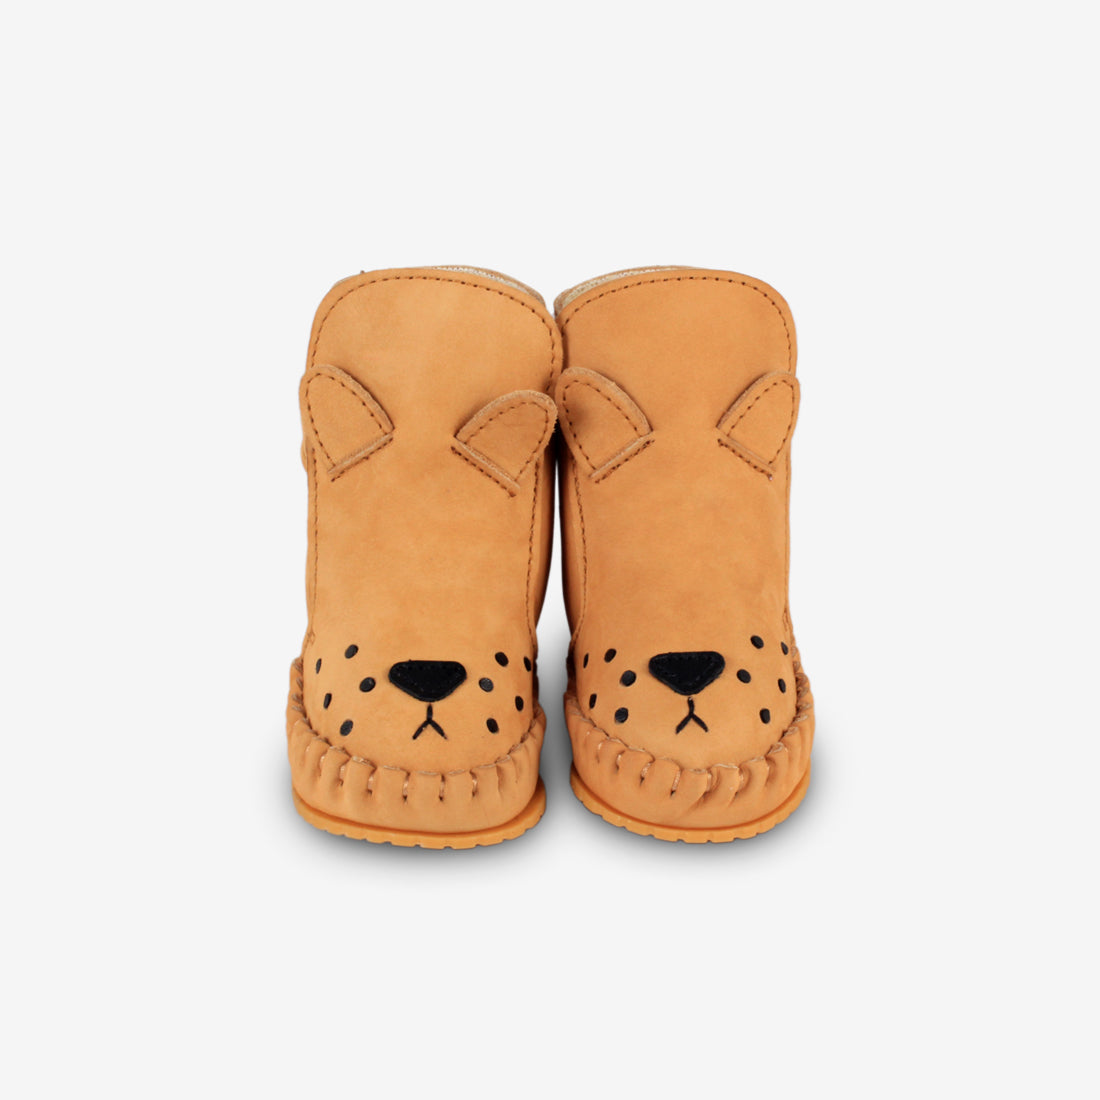 KAPI Shearling Leather Baby Boots - Lion